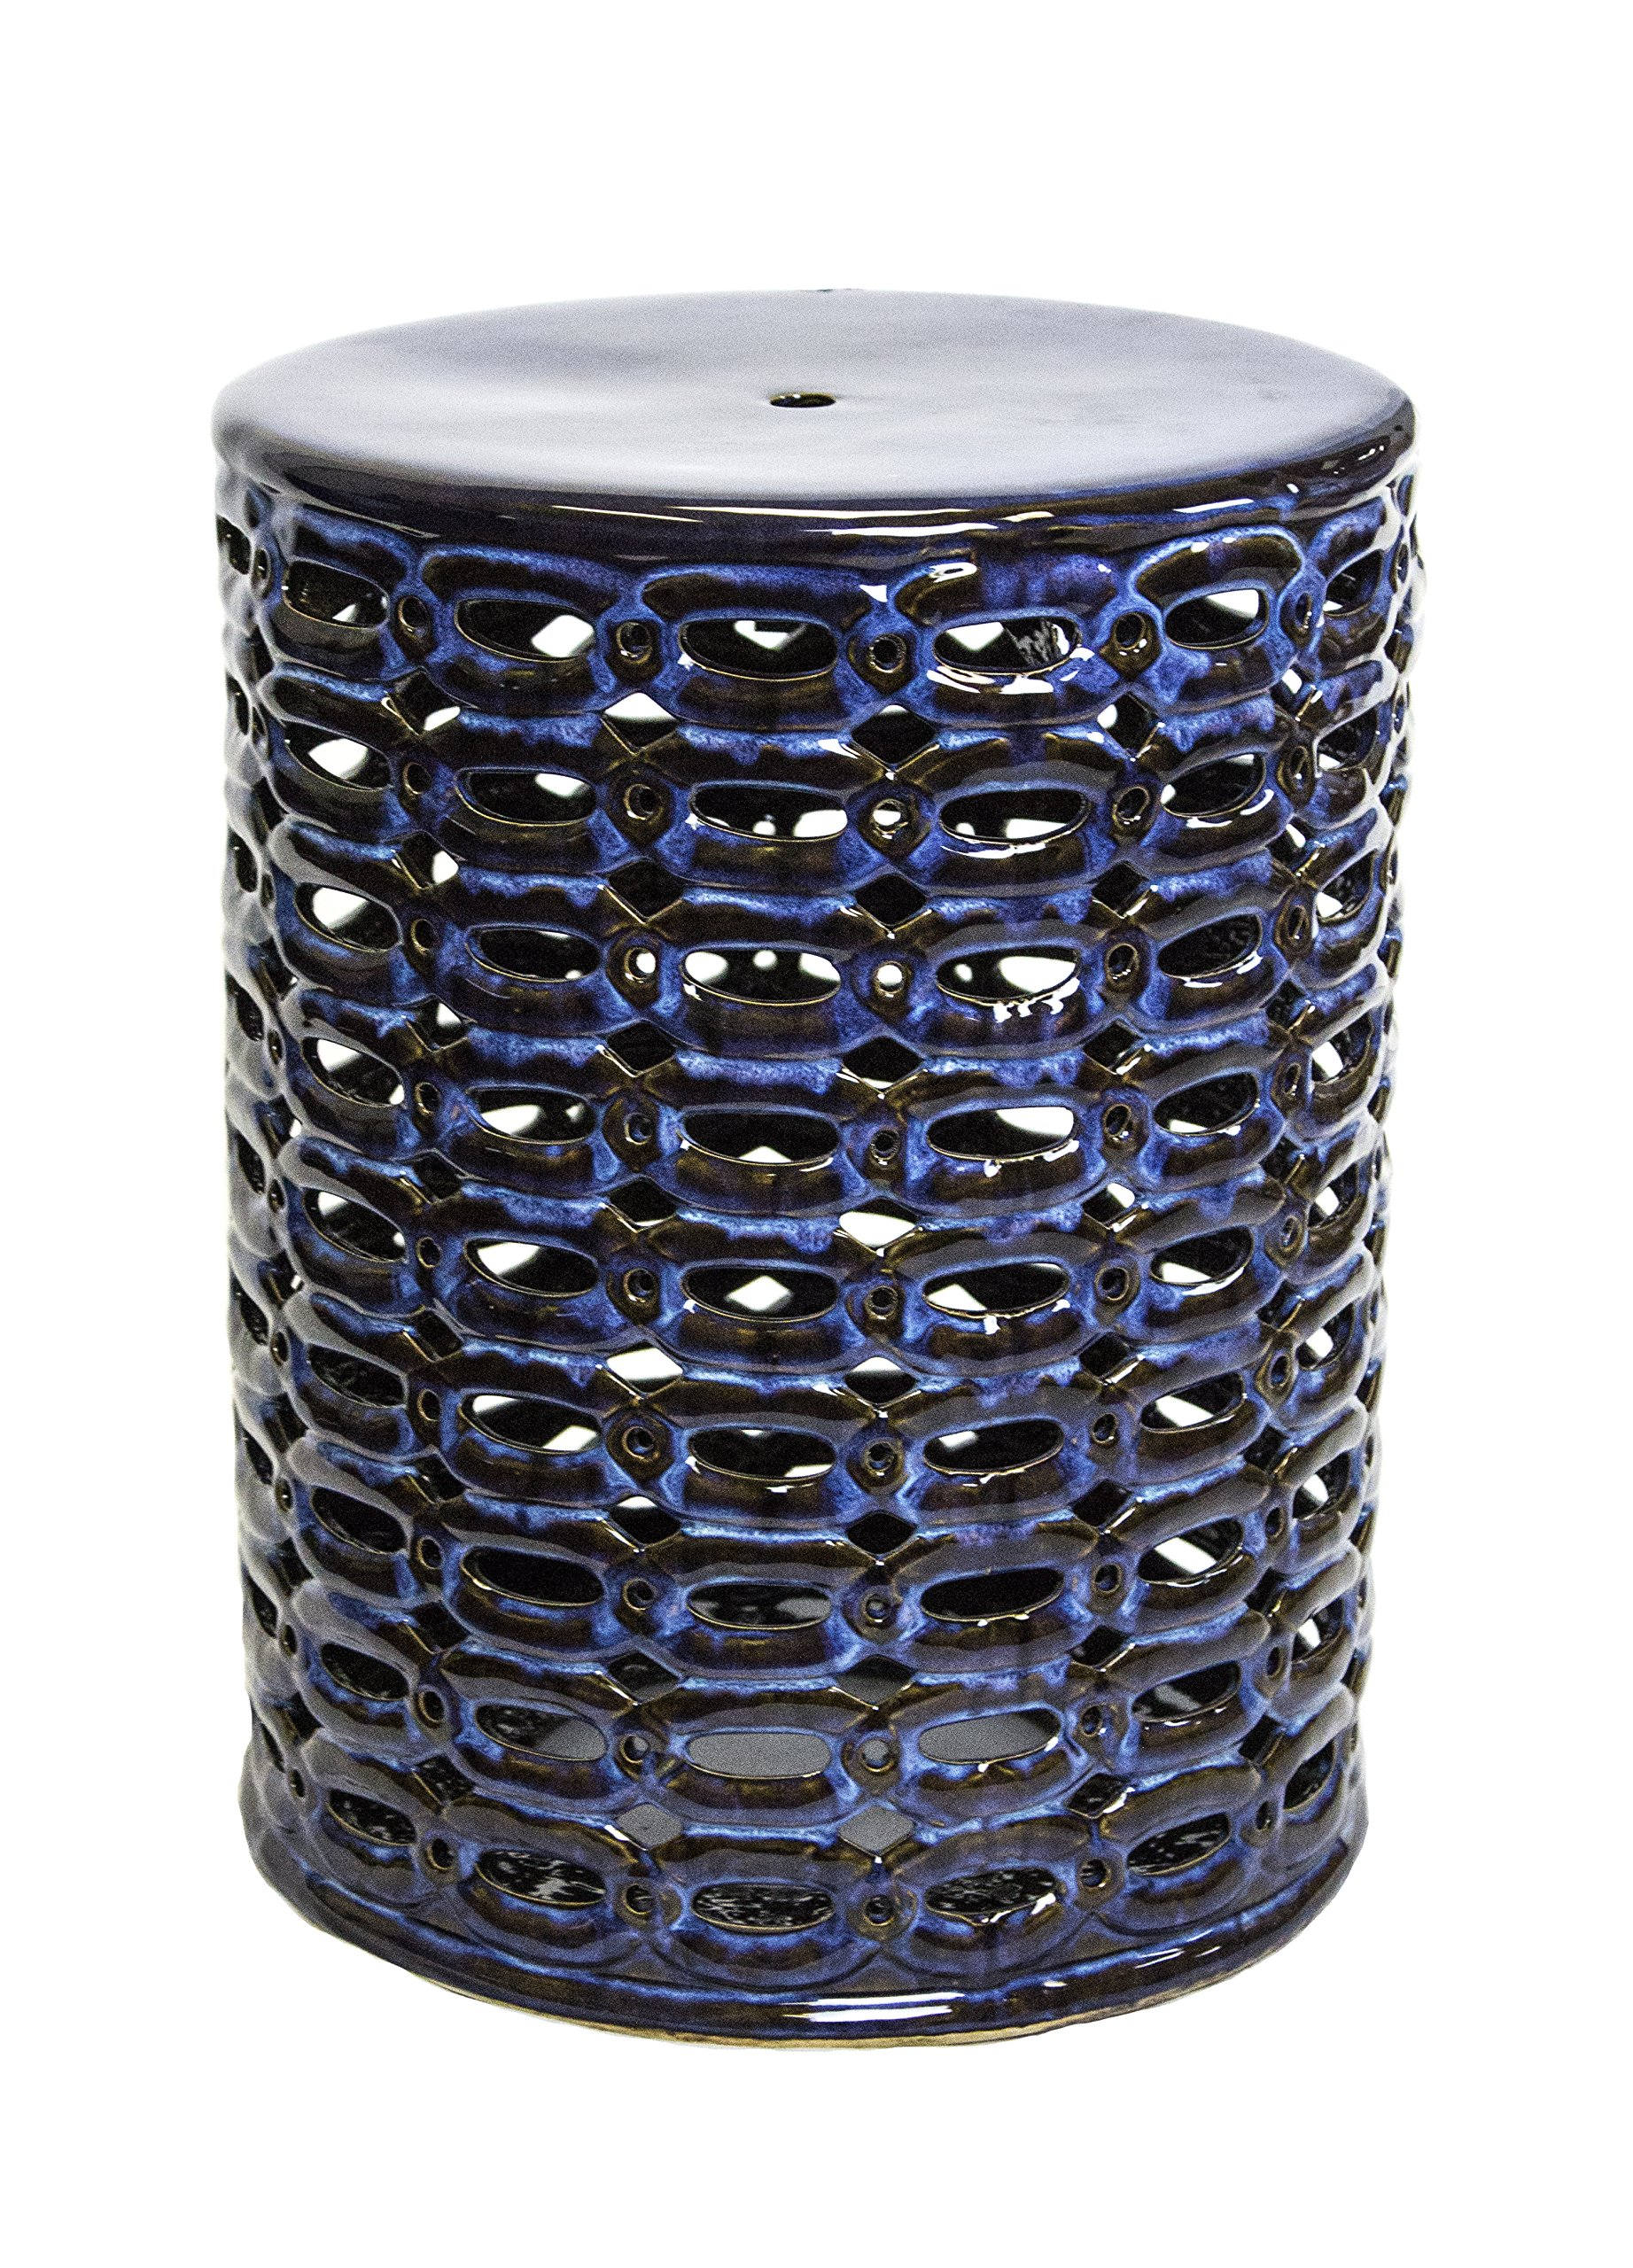 Sagebrook Home FC10447-01 Pierced Garden Stool Reactive Blue Ceramic, 13.5 x 13.5 x 17.5 Inches